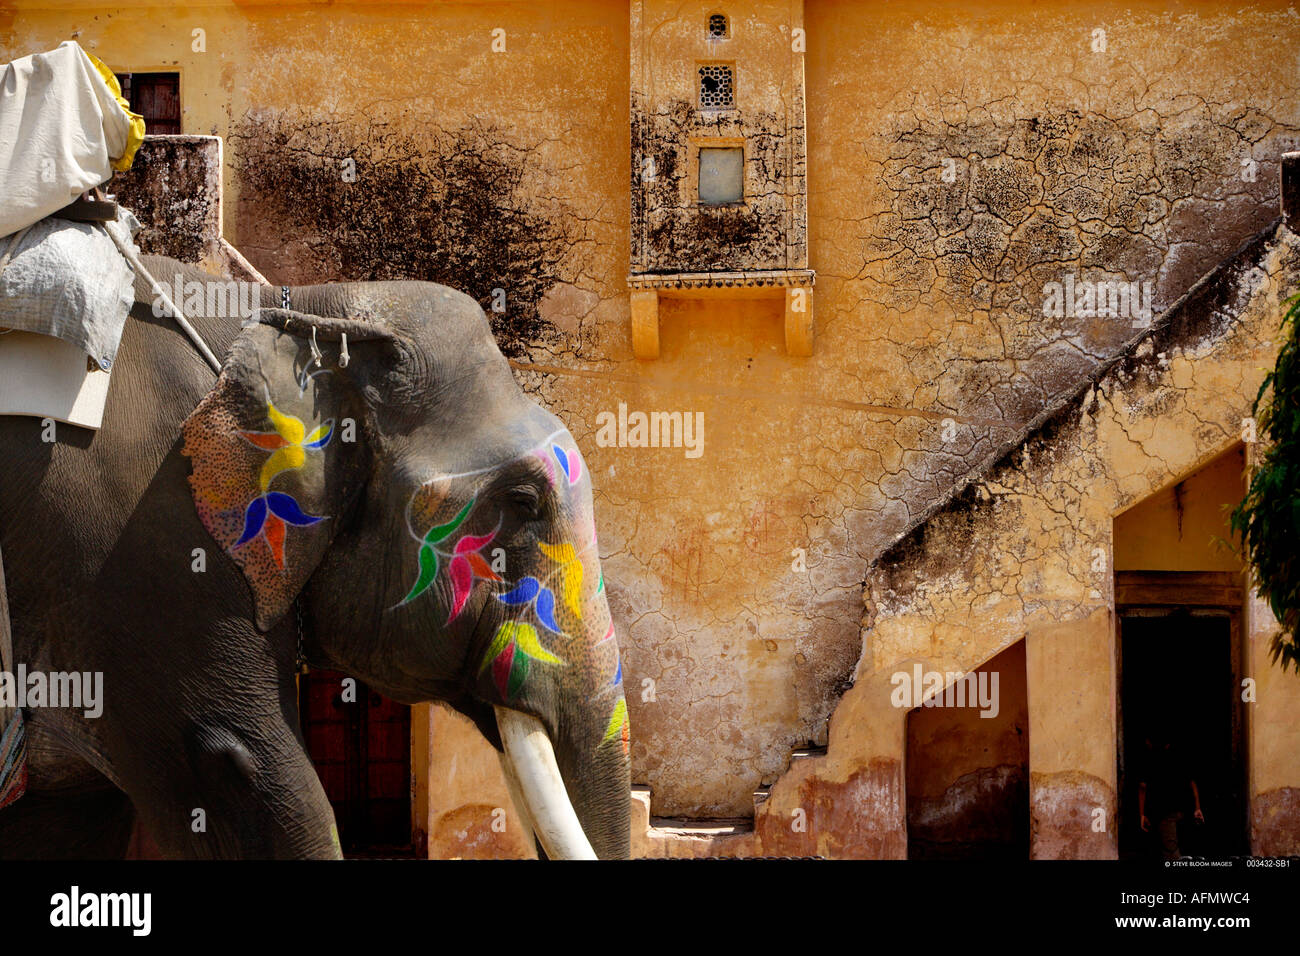 Elephant Deur Elephant House India Stockfotos Elephant House India Bilder Alamy